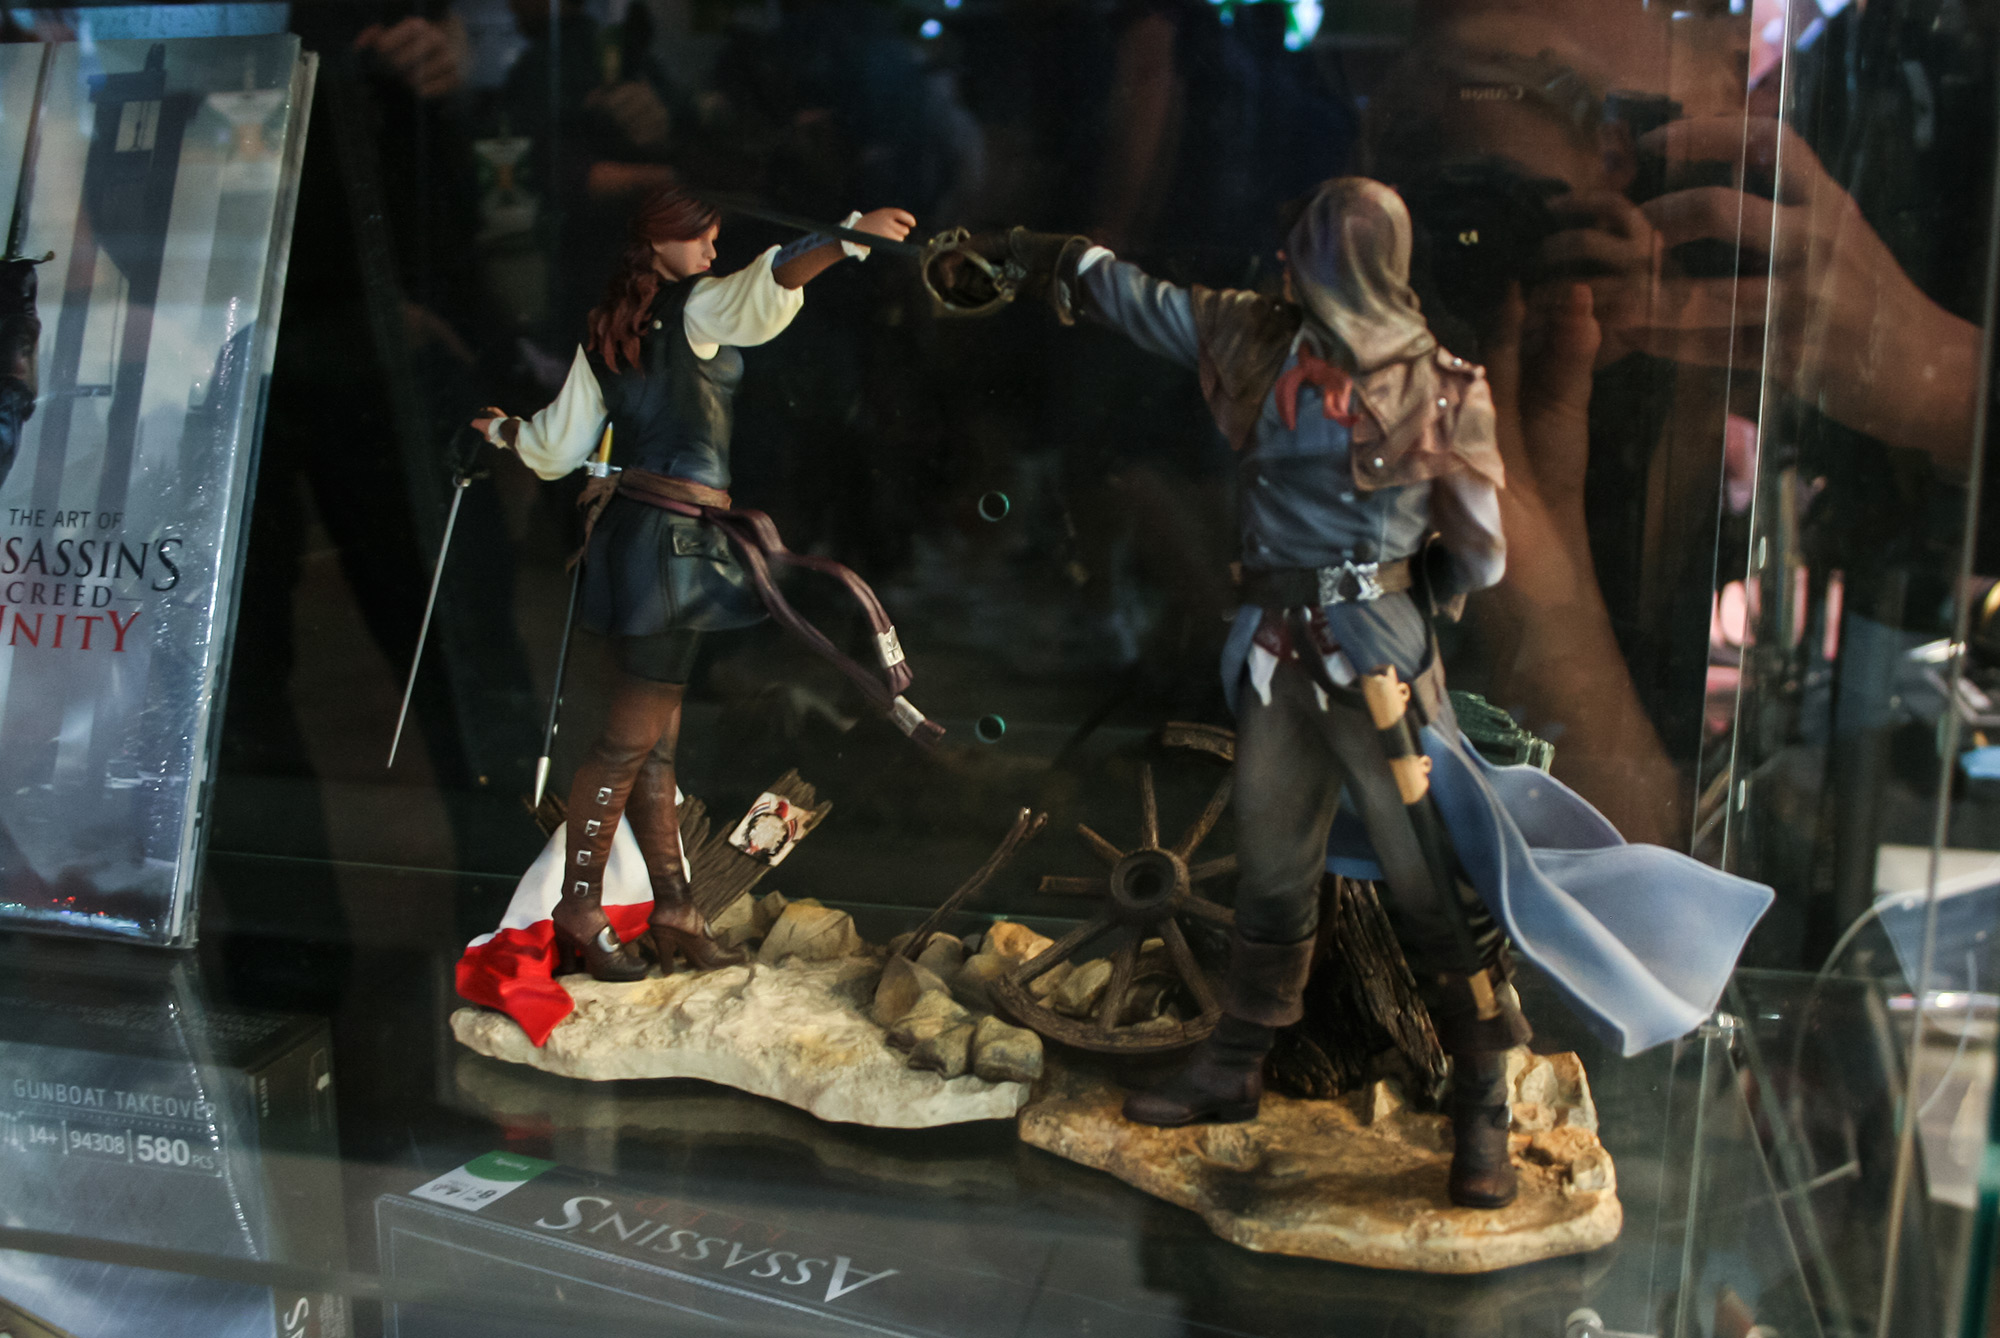 PAX Aus - Melbourne 2014 - Assassin's Creed figures